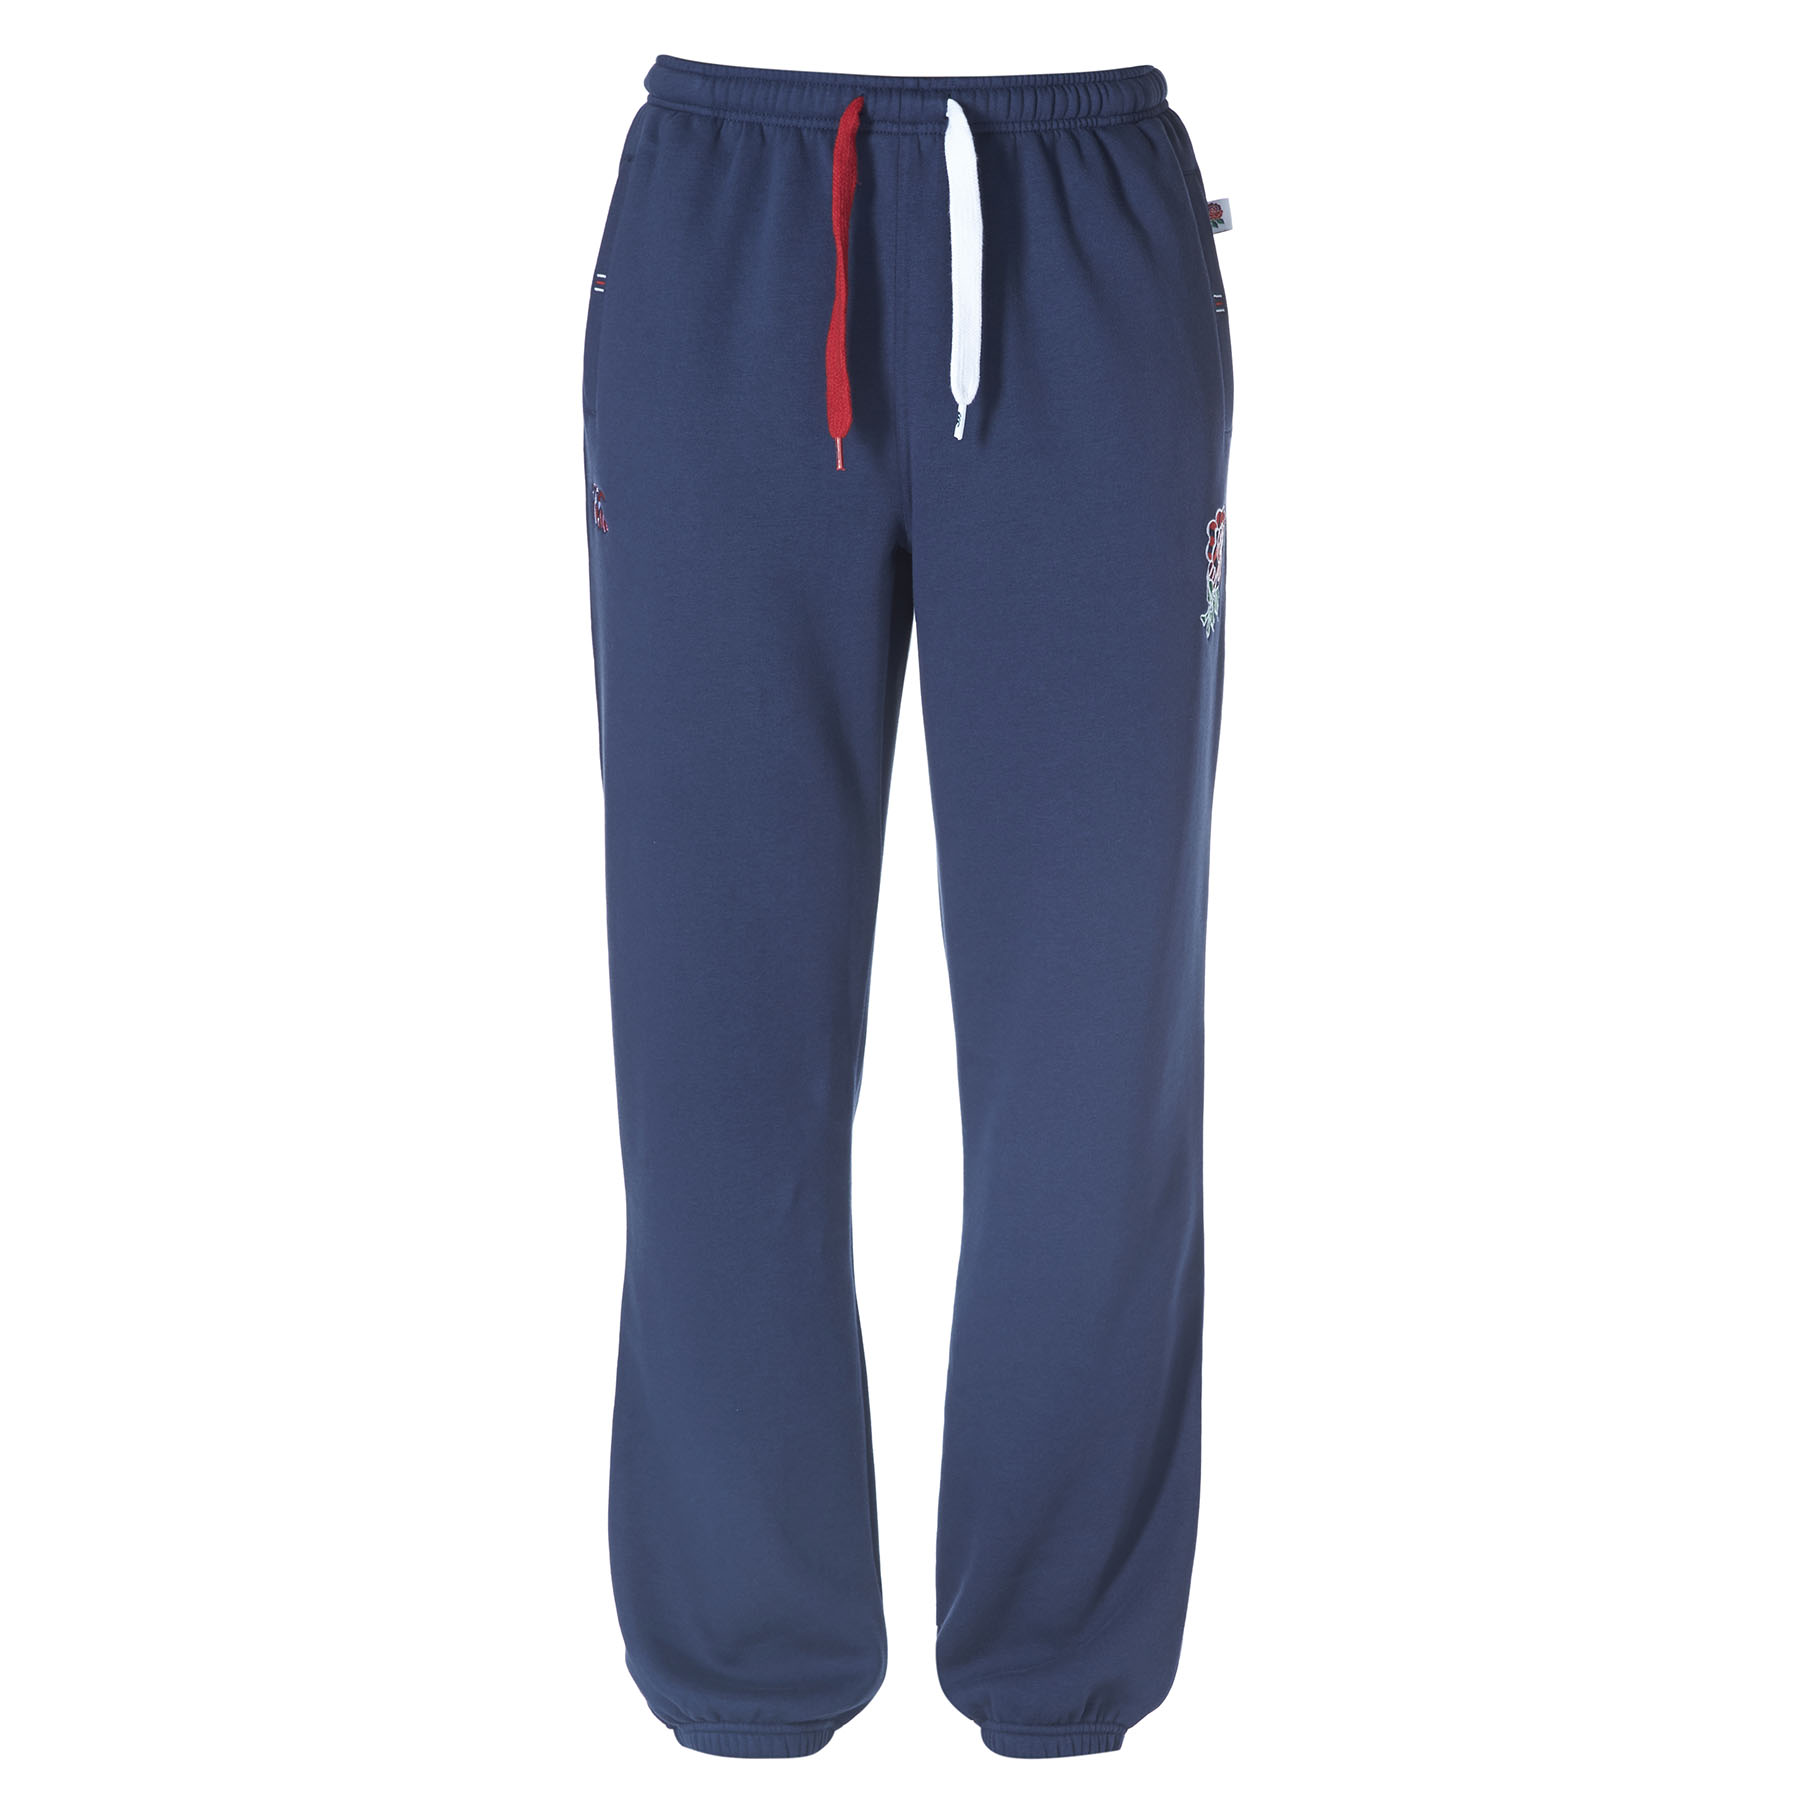 England Uglies Fleece Pant Navy